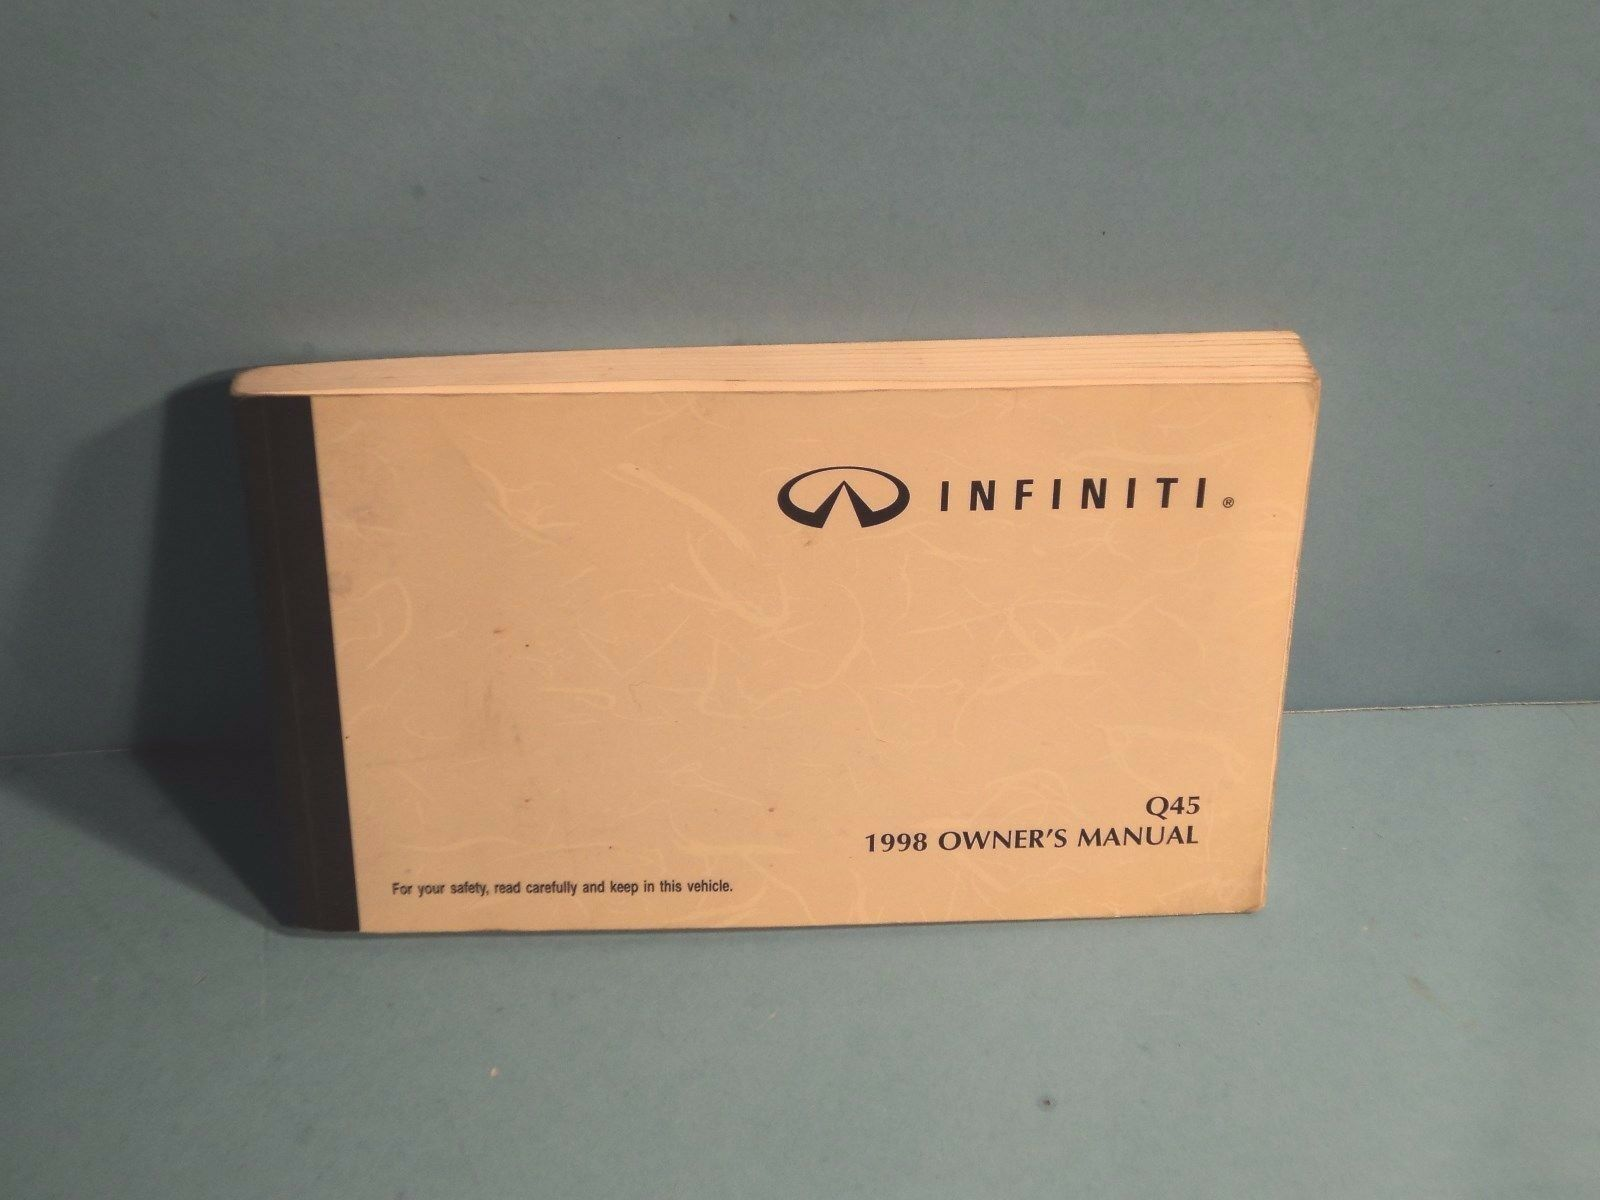 98 1998 Infiniti Q45 owners manual 1 of 1Only 2 available ...